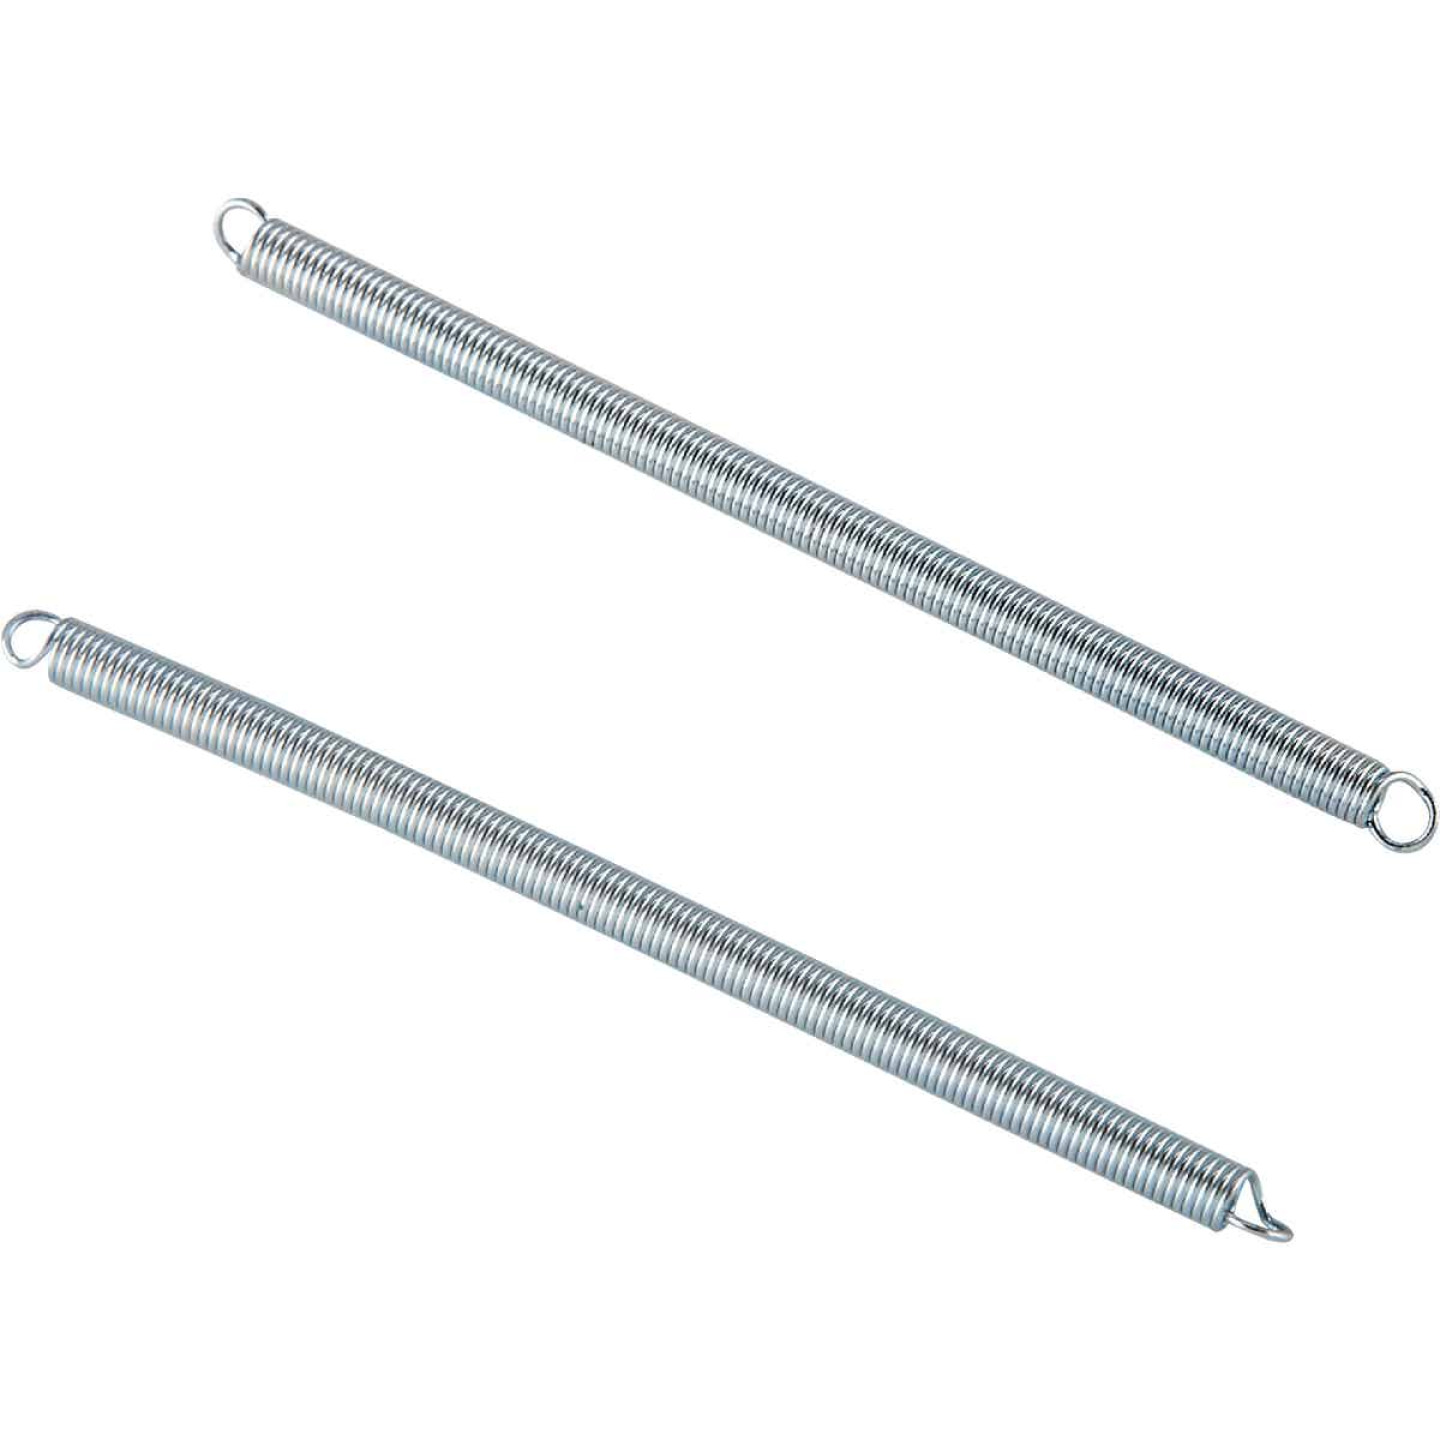 Century Spring 1-7/8 In. x 1/4 In. Extension Spring (2 Count) Image 1